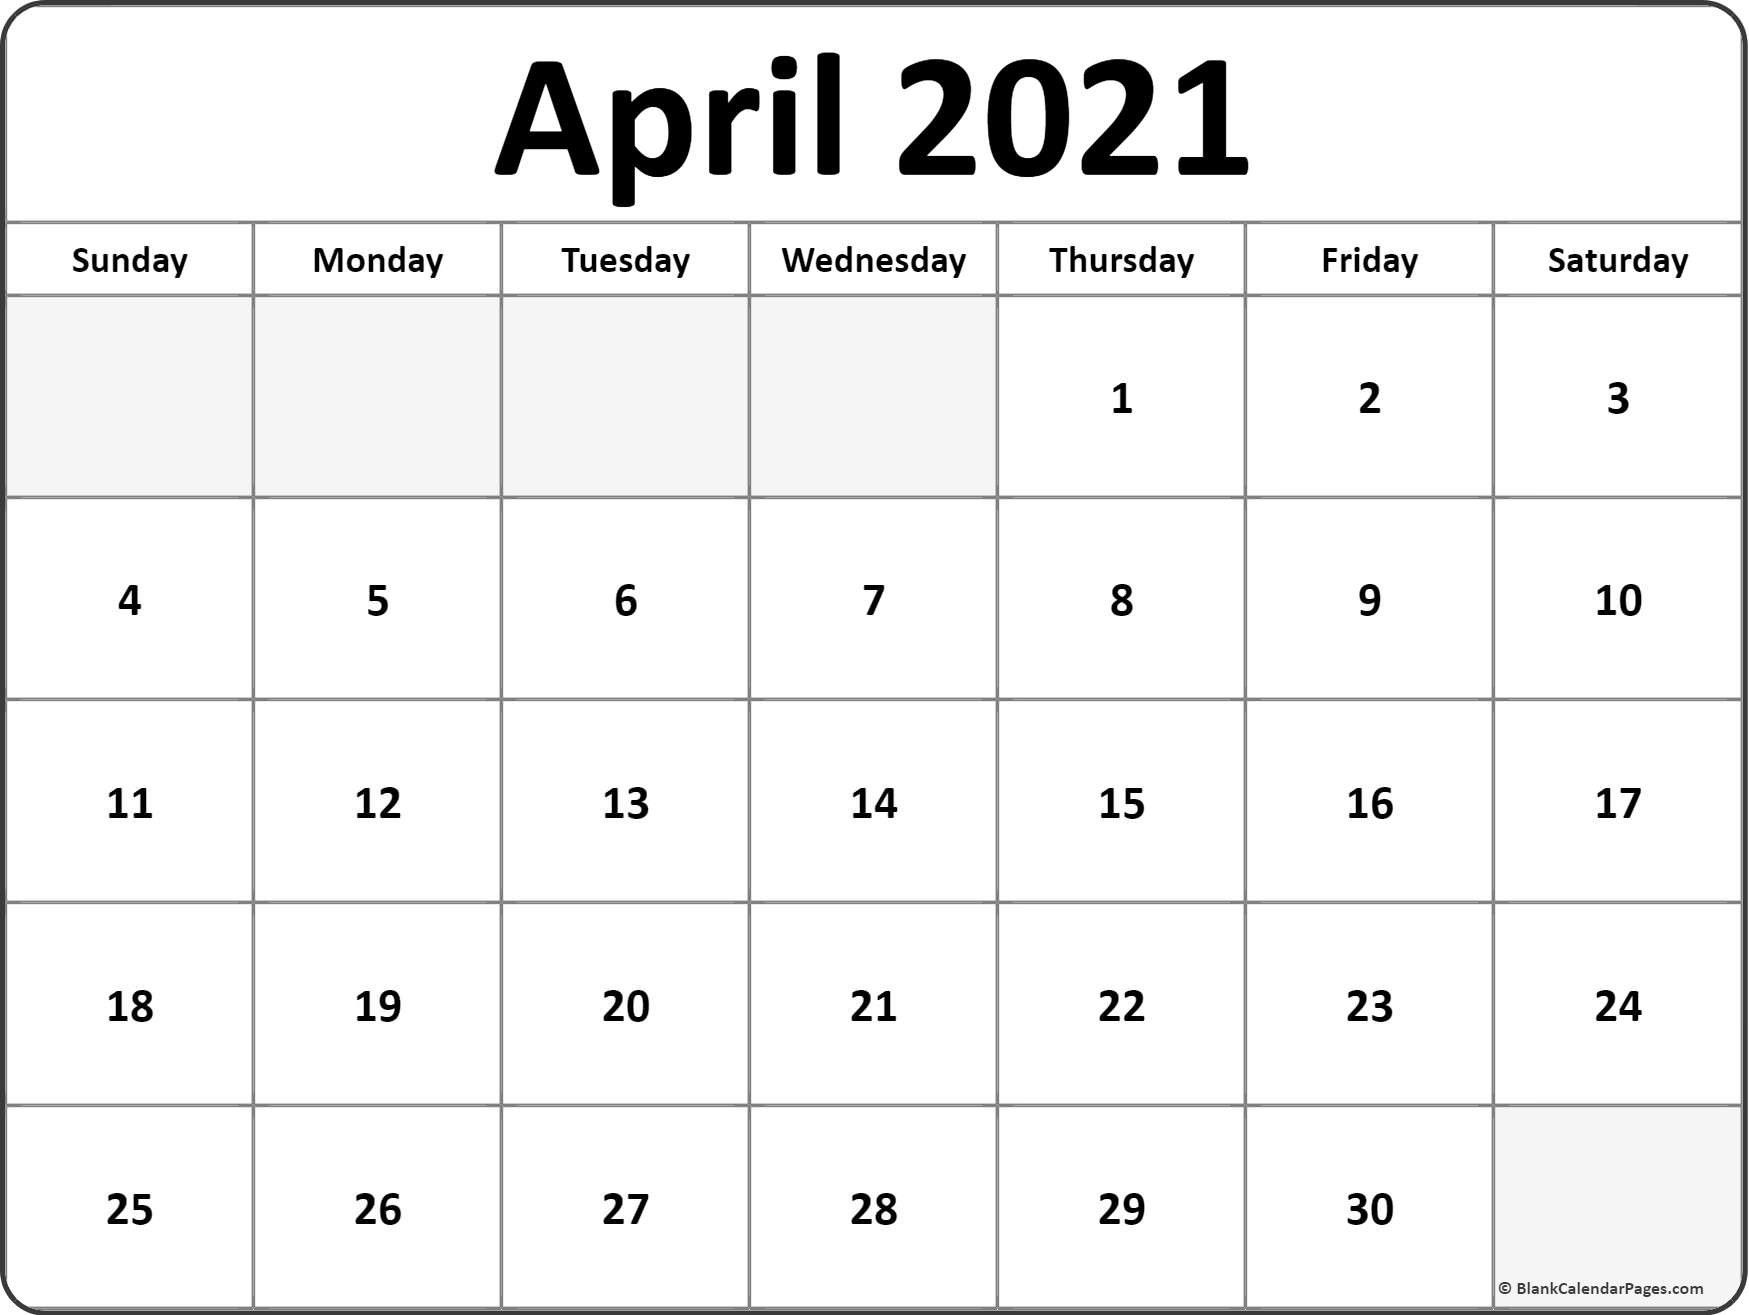 April 2021 Calendar January 2021 Calendar July 2021 Blank Calendar Templates May 2021 In 2020 Printable Calendar July Printable Calendar Word Weekly Calendar Template